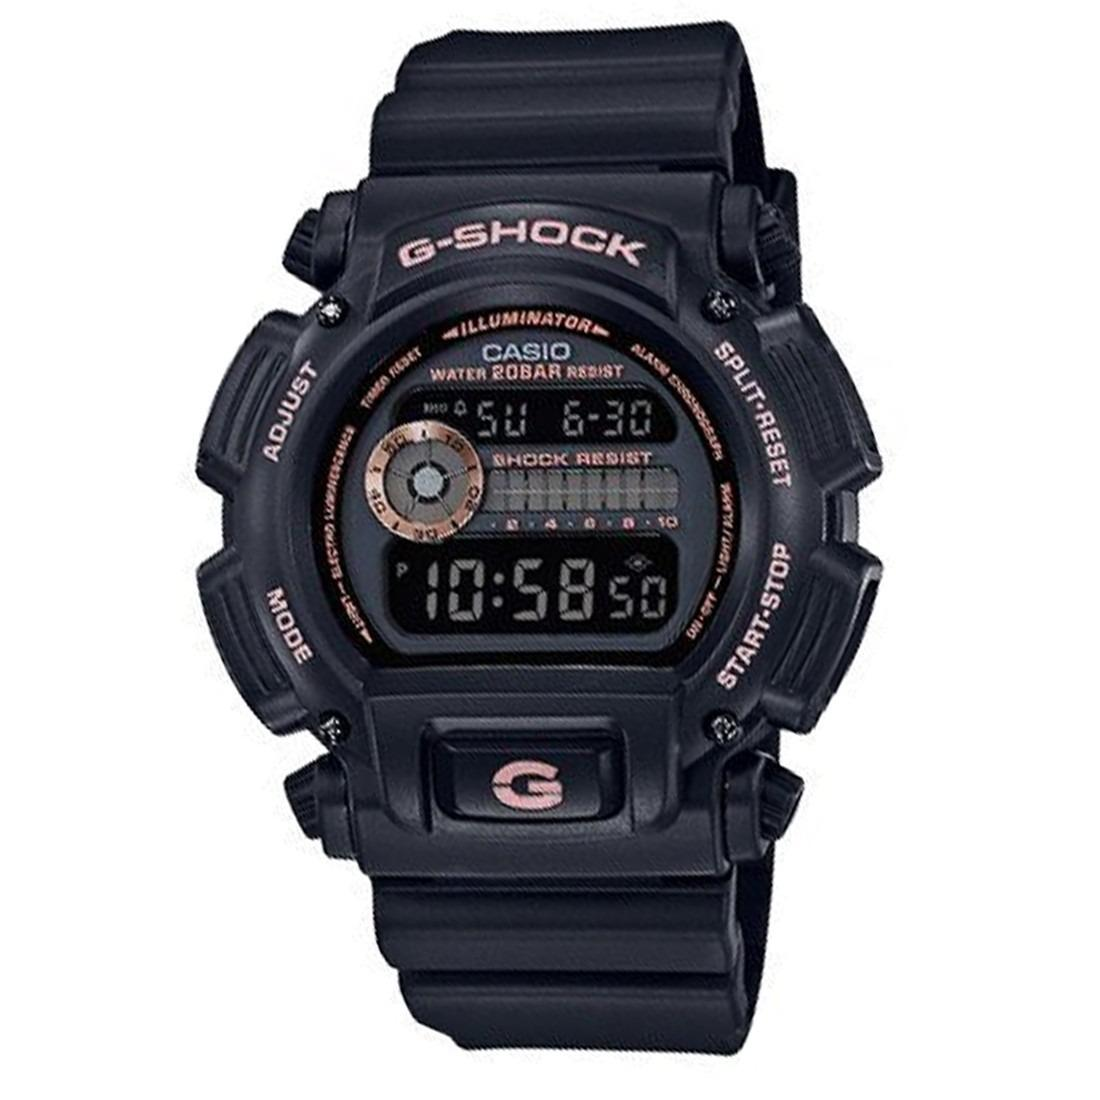 Cheapest Casio G Shock Dw 9052Gbx 1A4 Standard Digital Men S Watch